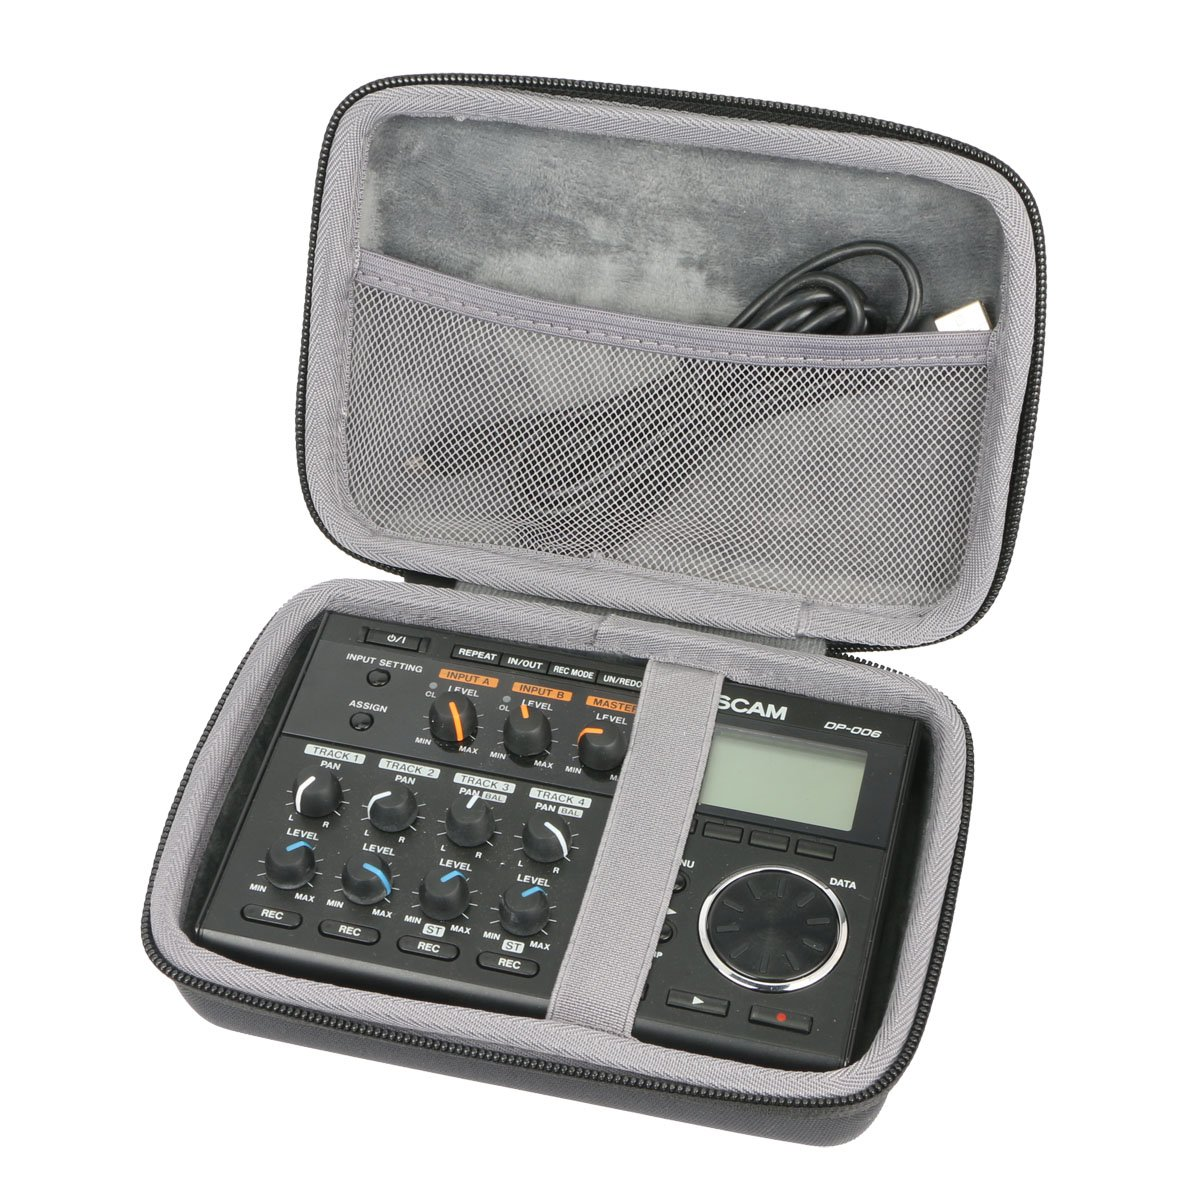 Hard Travel Case for Tascam DP-006 Digital Portastudio Multitrack Recorder by co2CREA